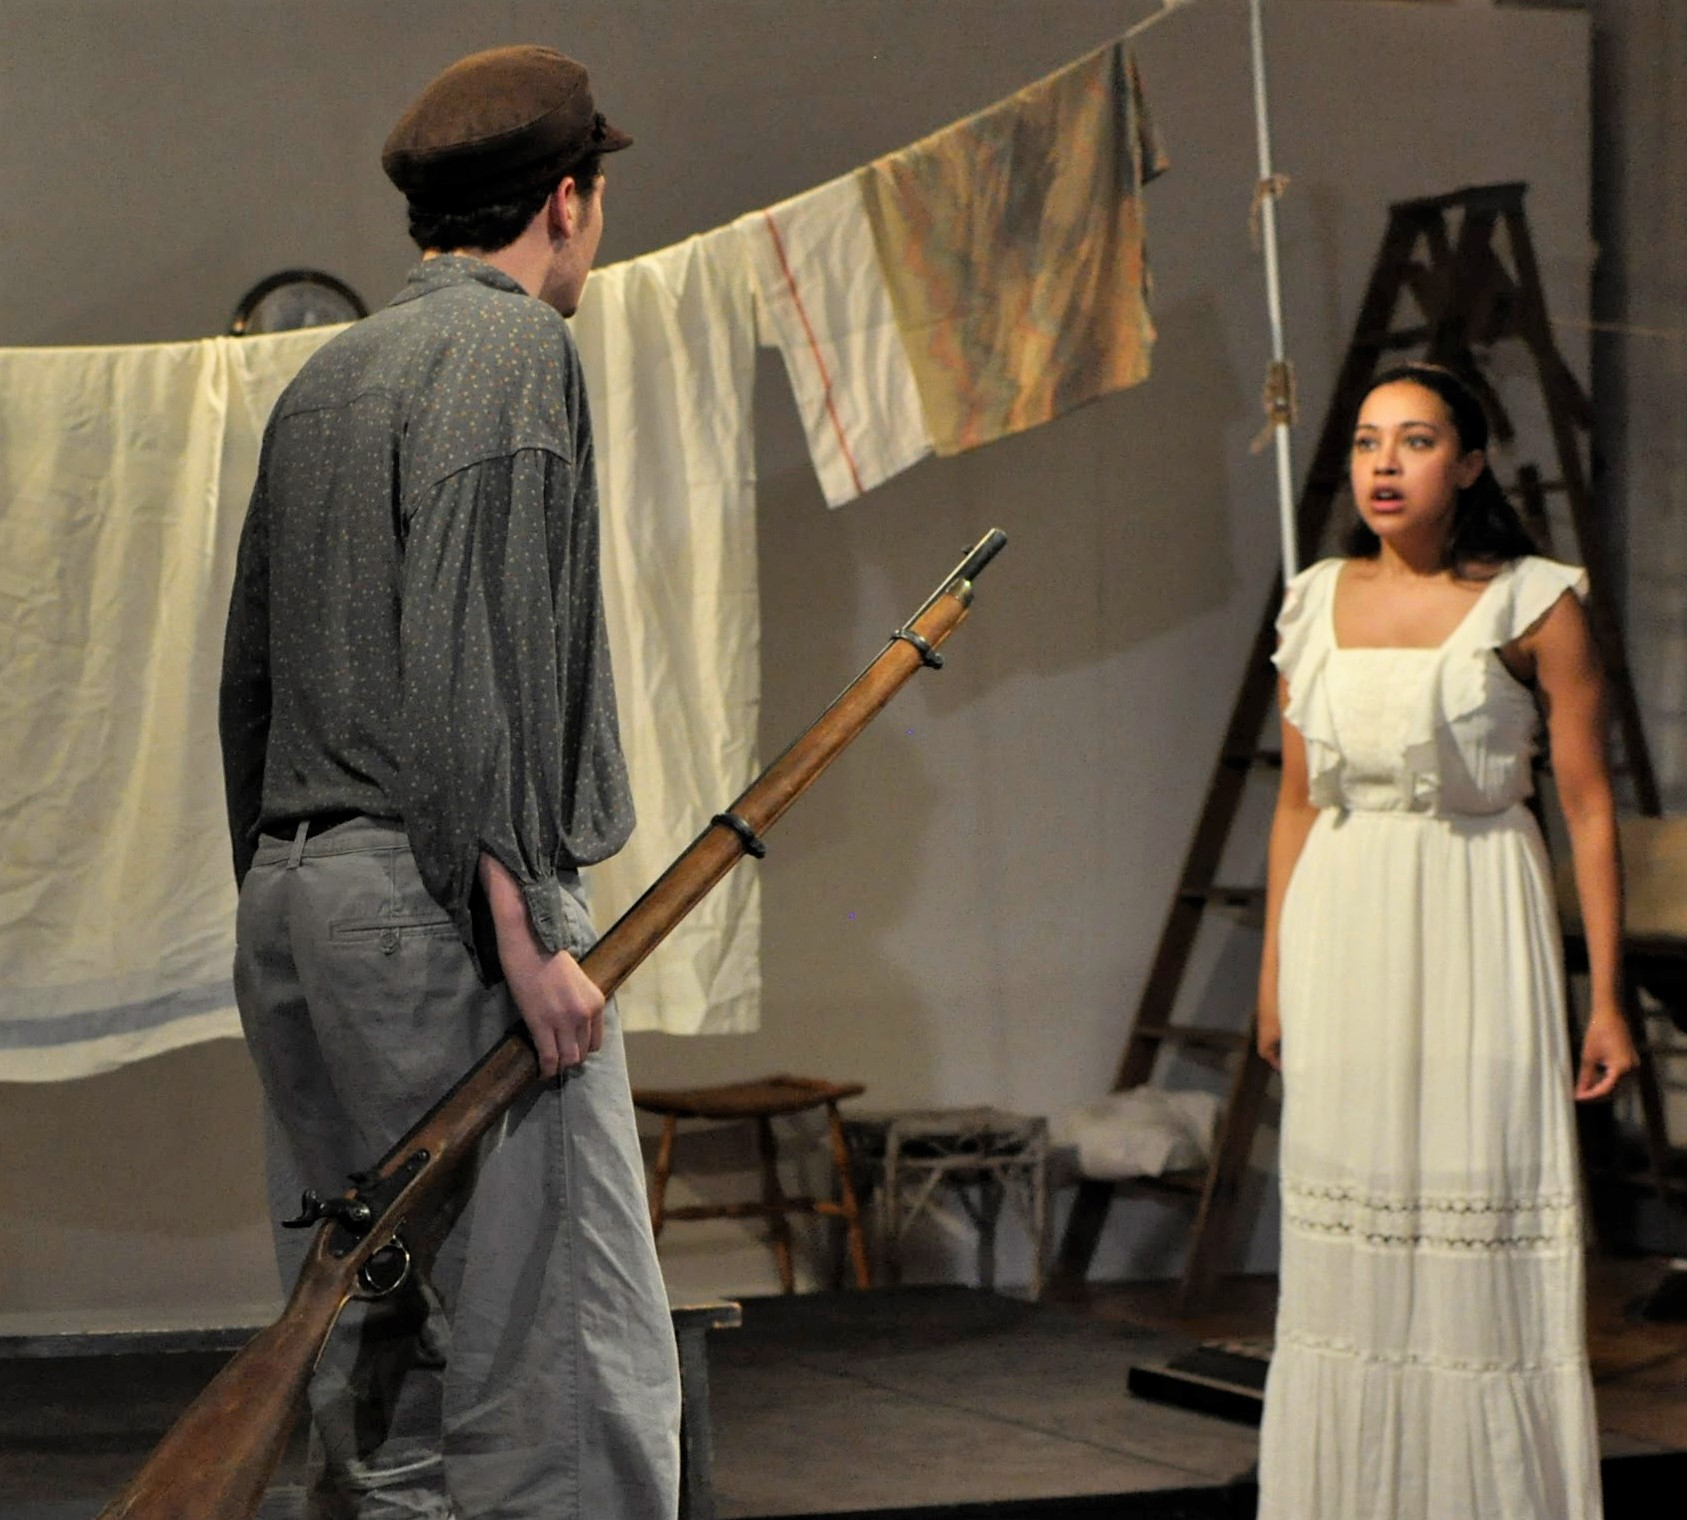 Dilone as Nina with Taylor Petracek as Konstantin.